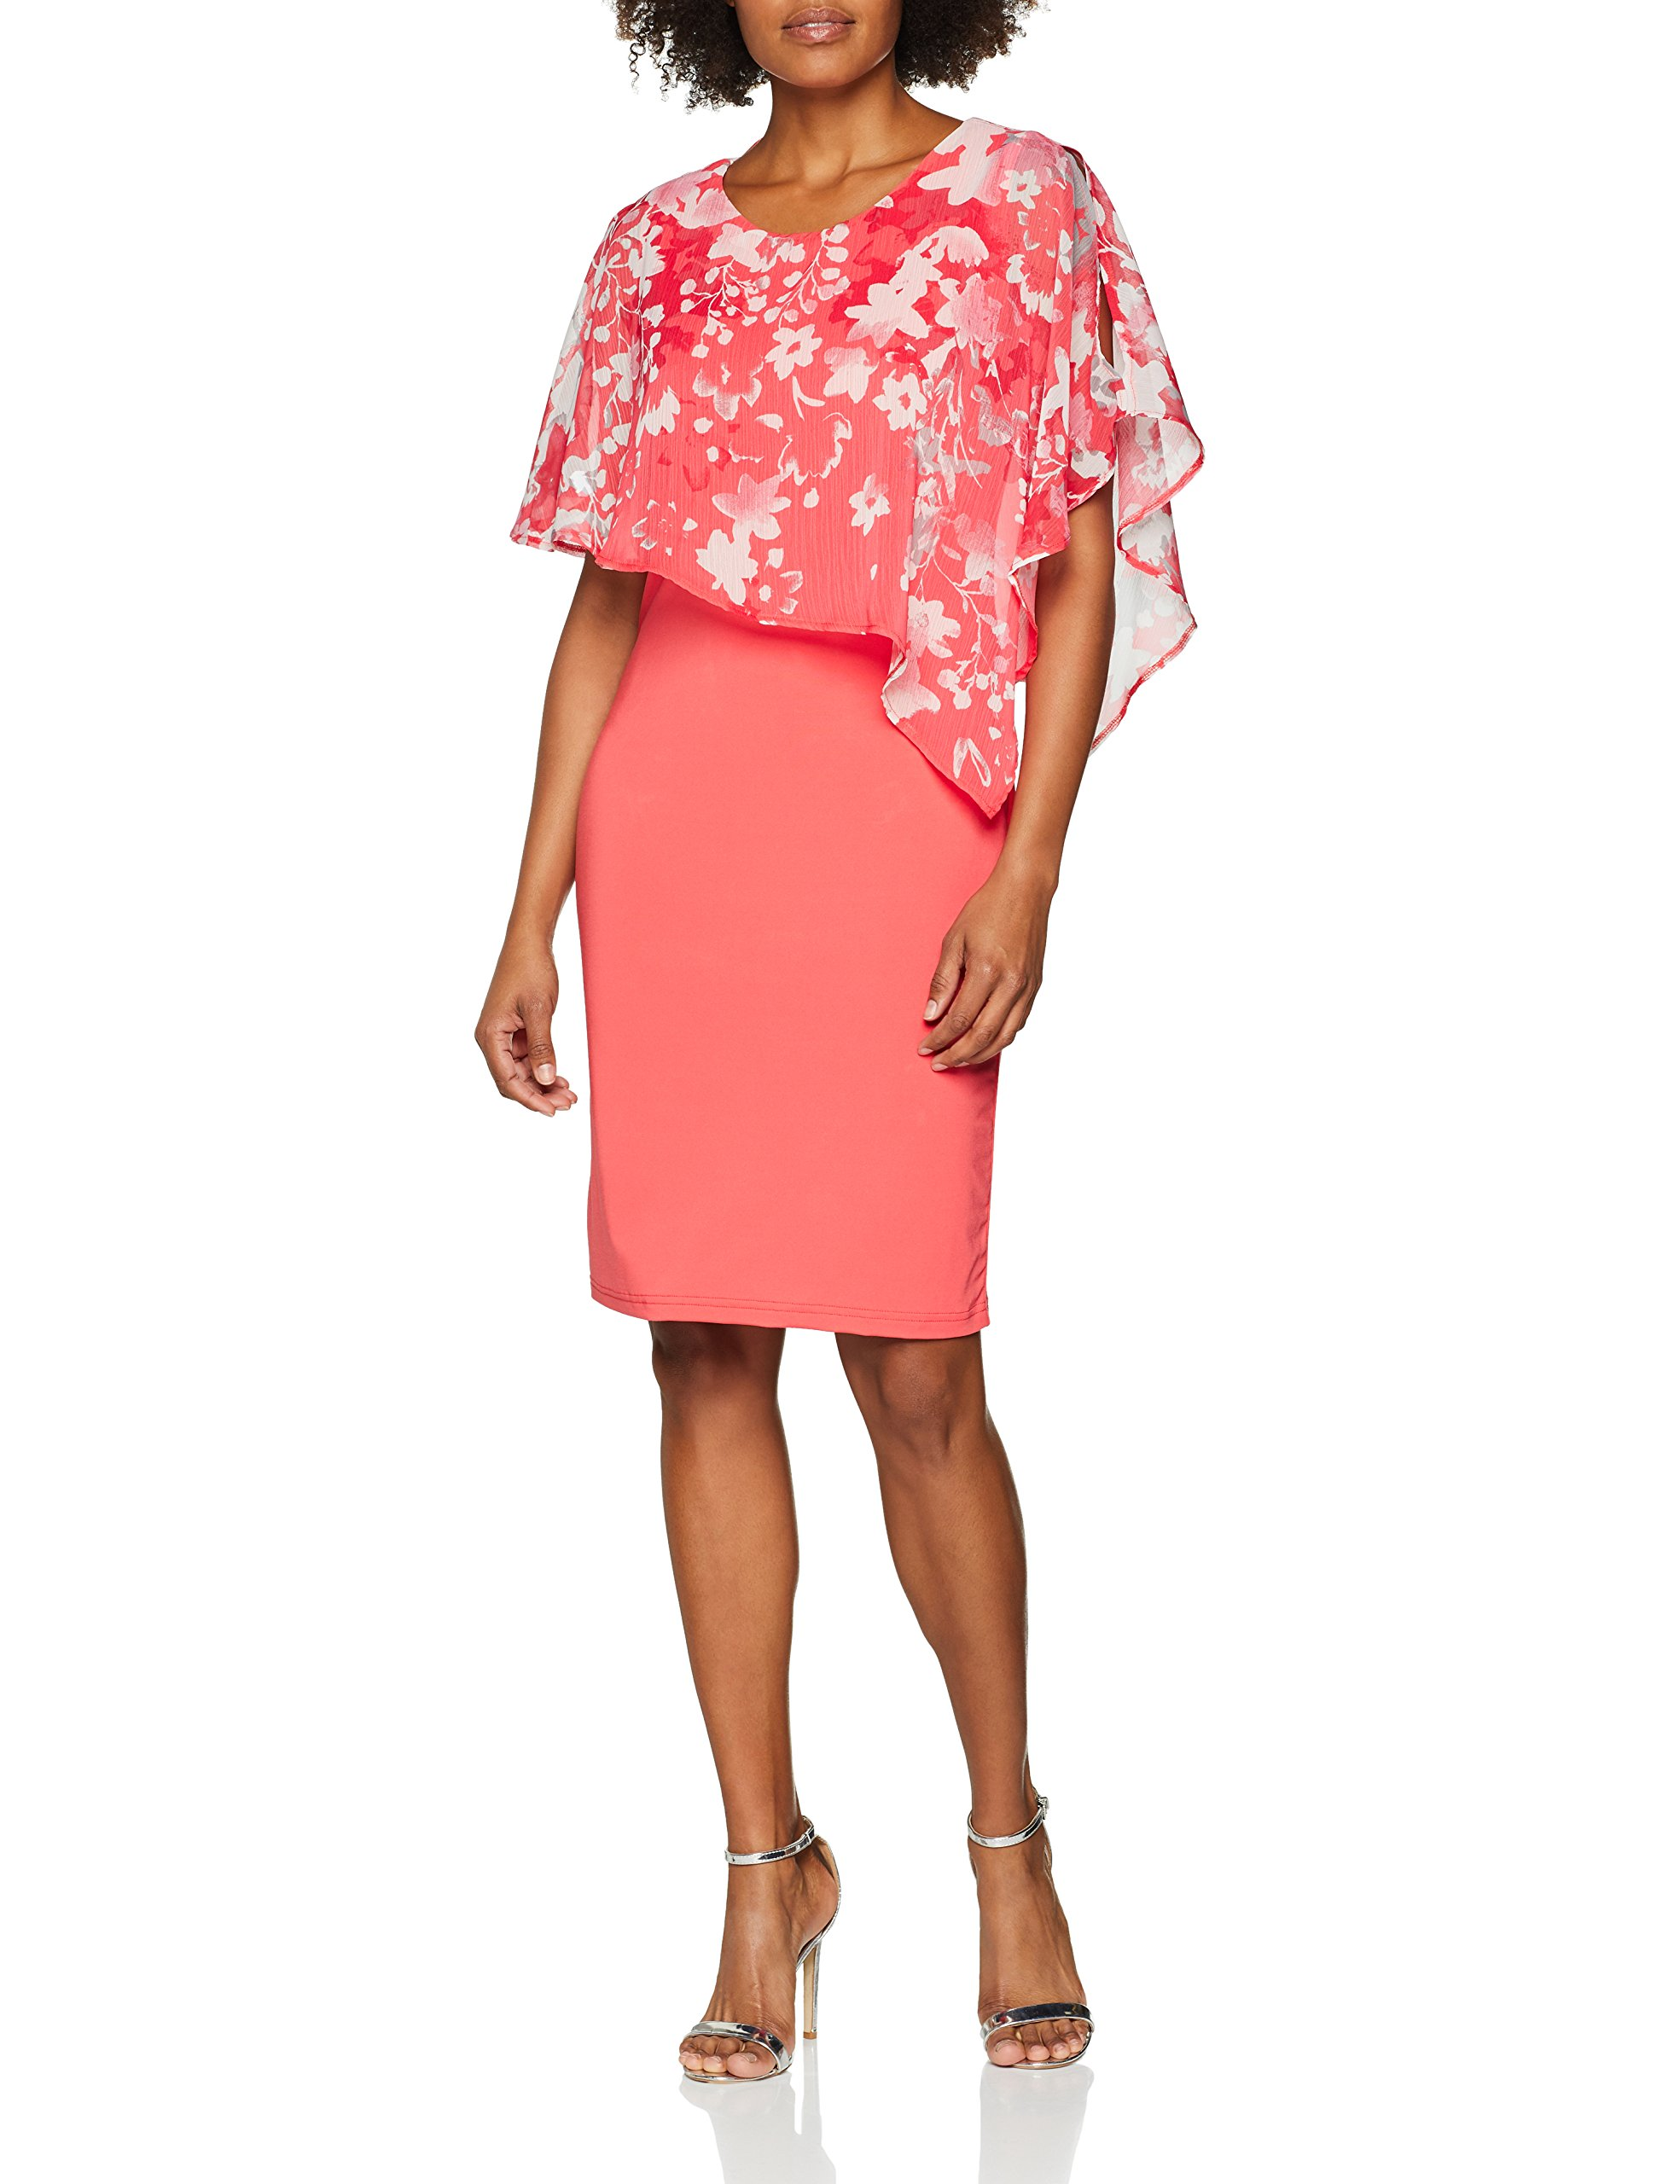 Betty 0721 Barclay 410240 RobeRougered Coral 3942 Femme OiPXuwZkT